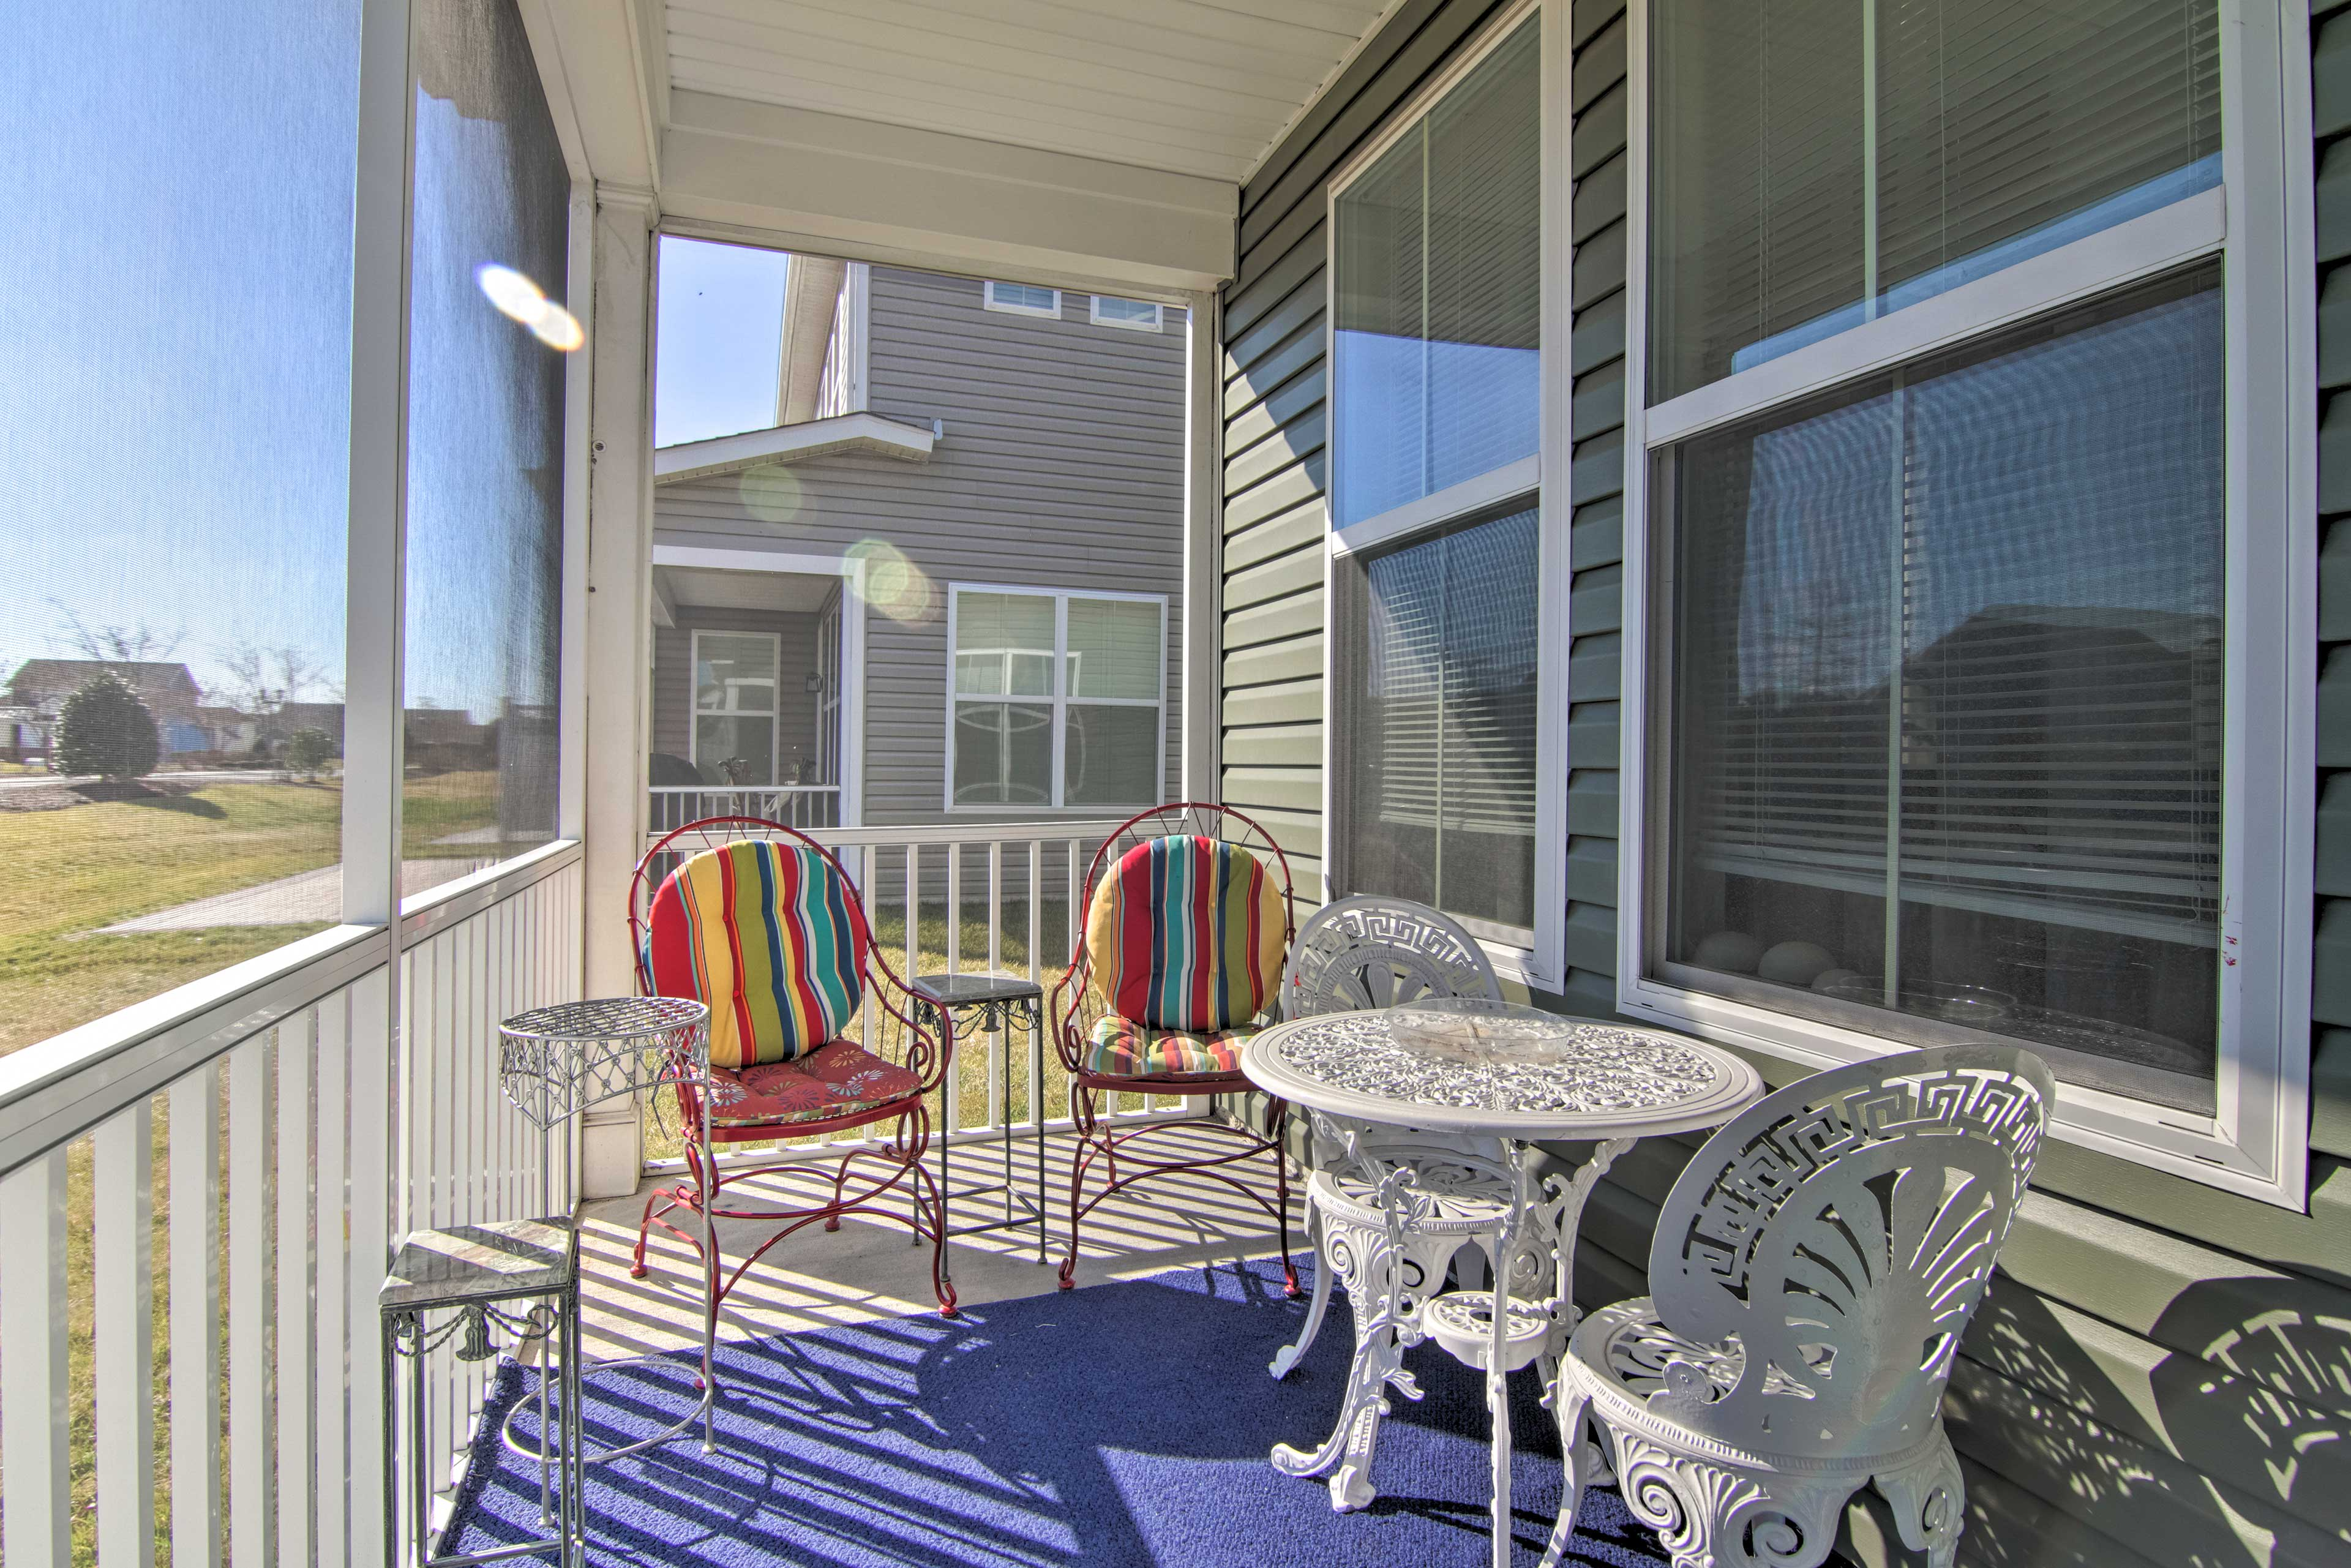 Enjoy a snack or a drink out on the screened-in porch.